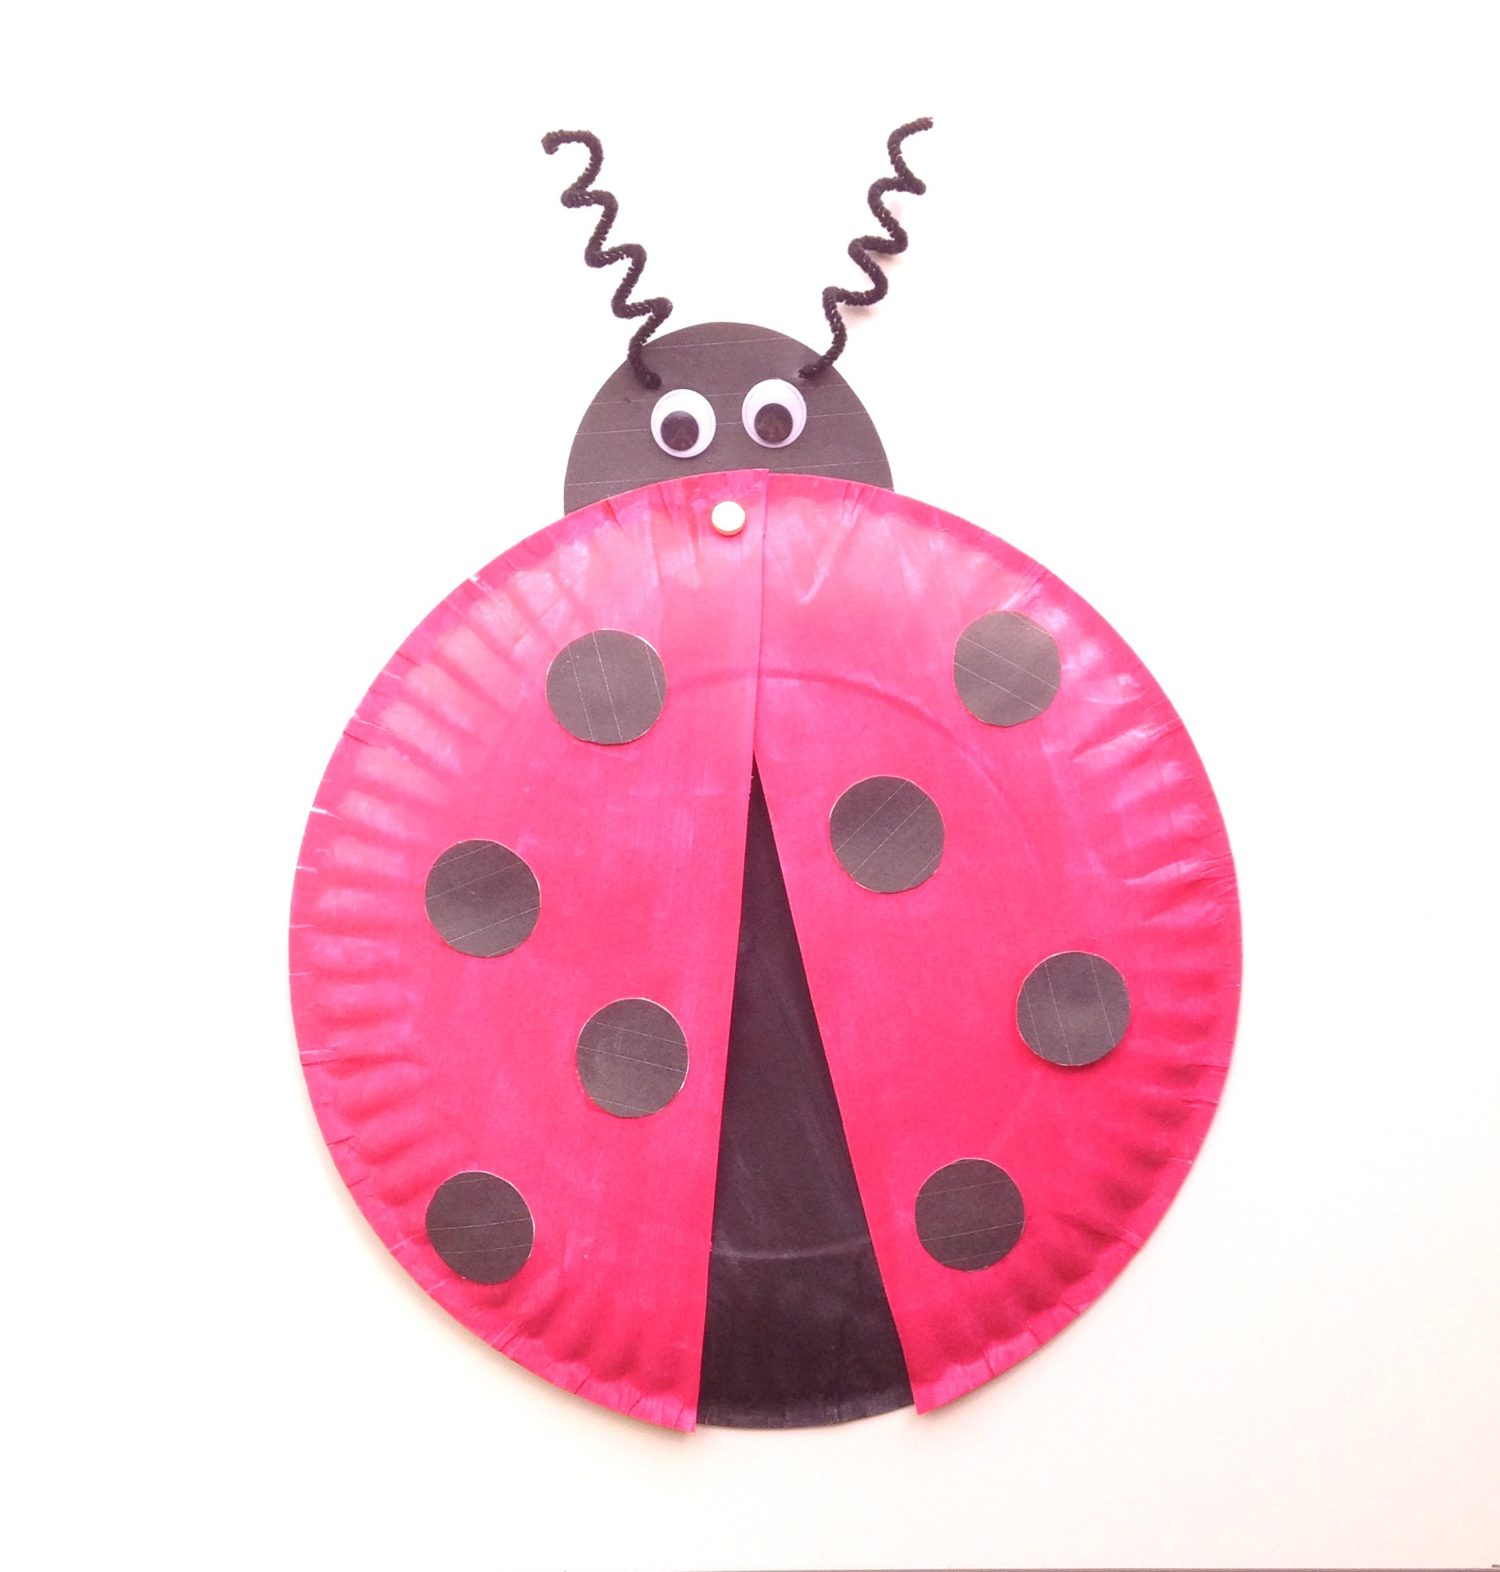 Ladybug Paper Plate Craft for Kids + Free Printable Template! - Six Clever Sisters  sc 1 st  Six Clever Sisters & Ladybug Paper Plate Craft for Kids + Free Printable Template ...